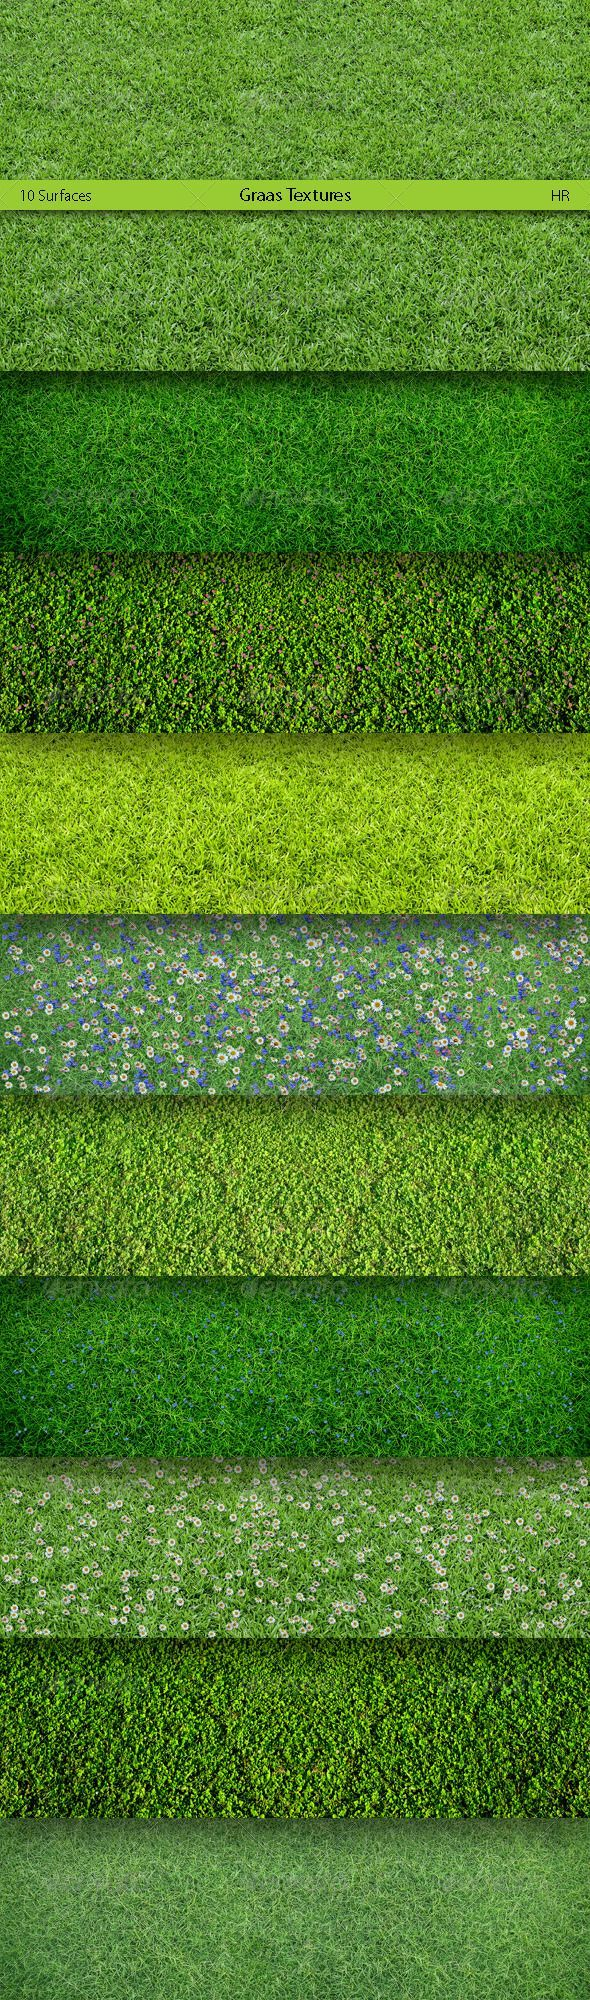 Grass Surfaces Texture Backgrounds - Nature Backgrounds                                                                                                                                                                                 More